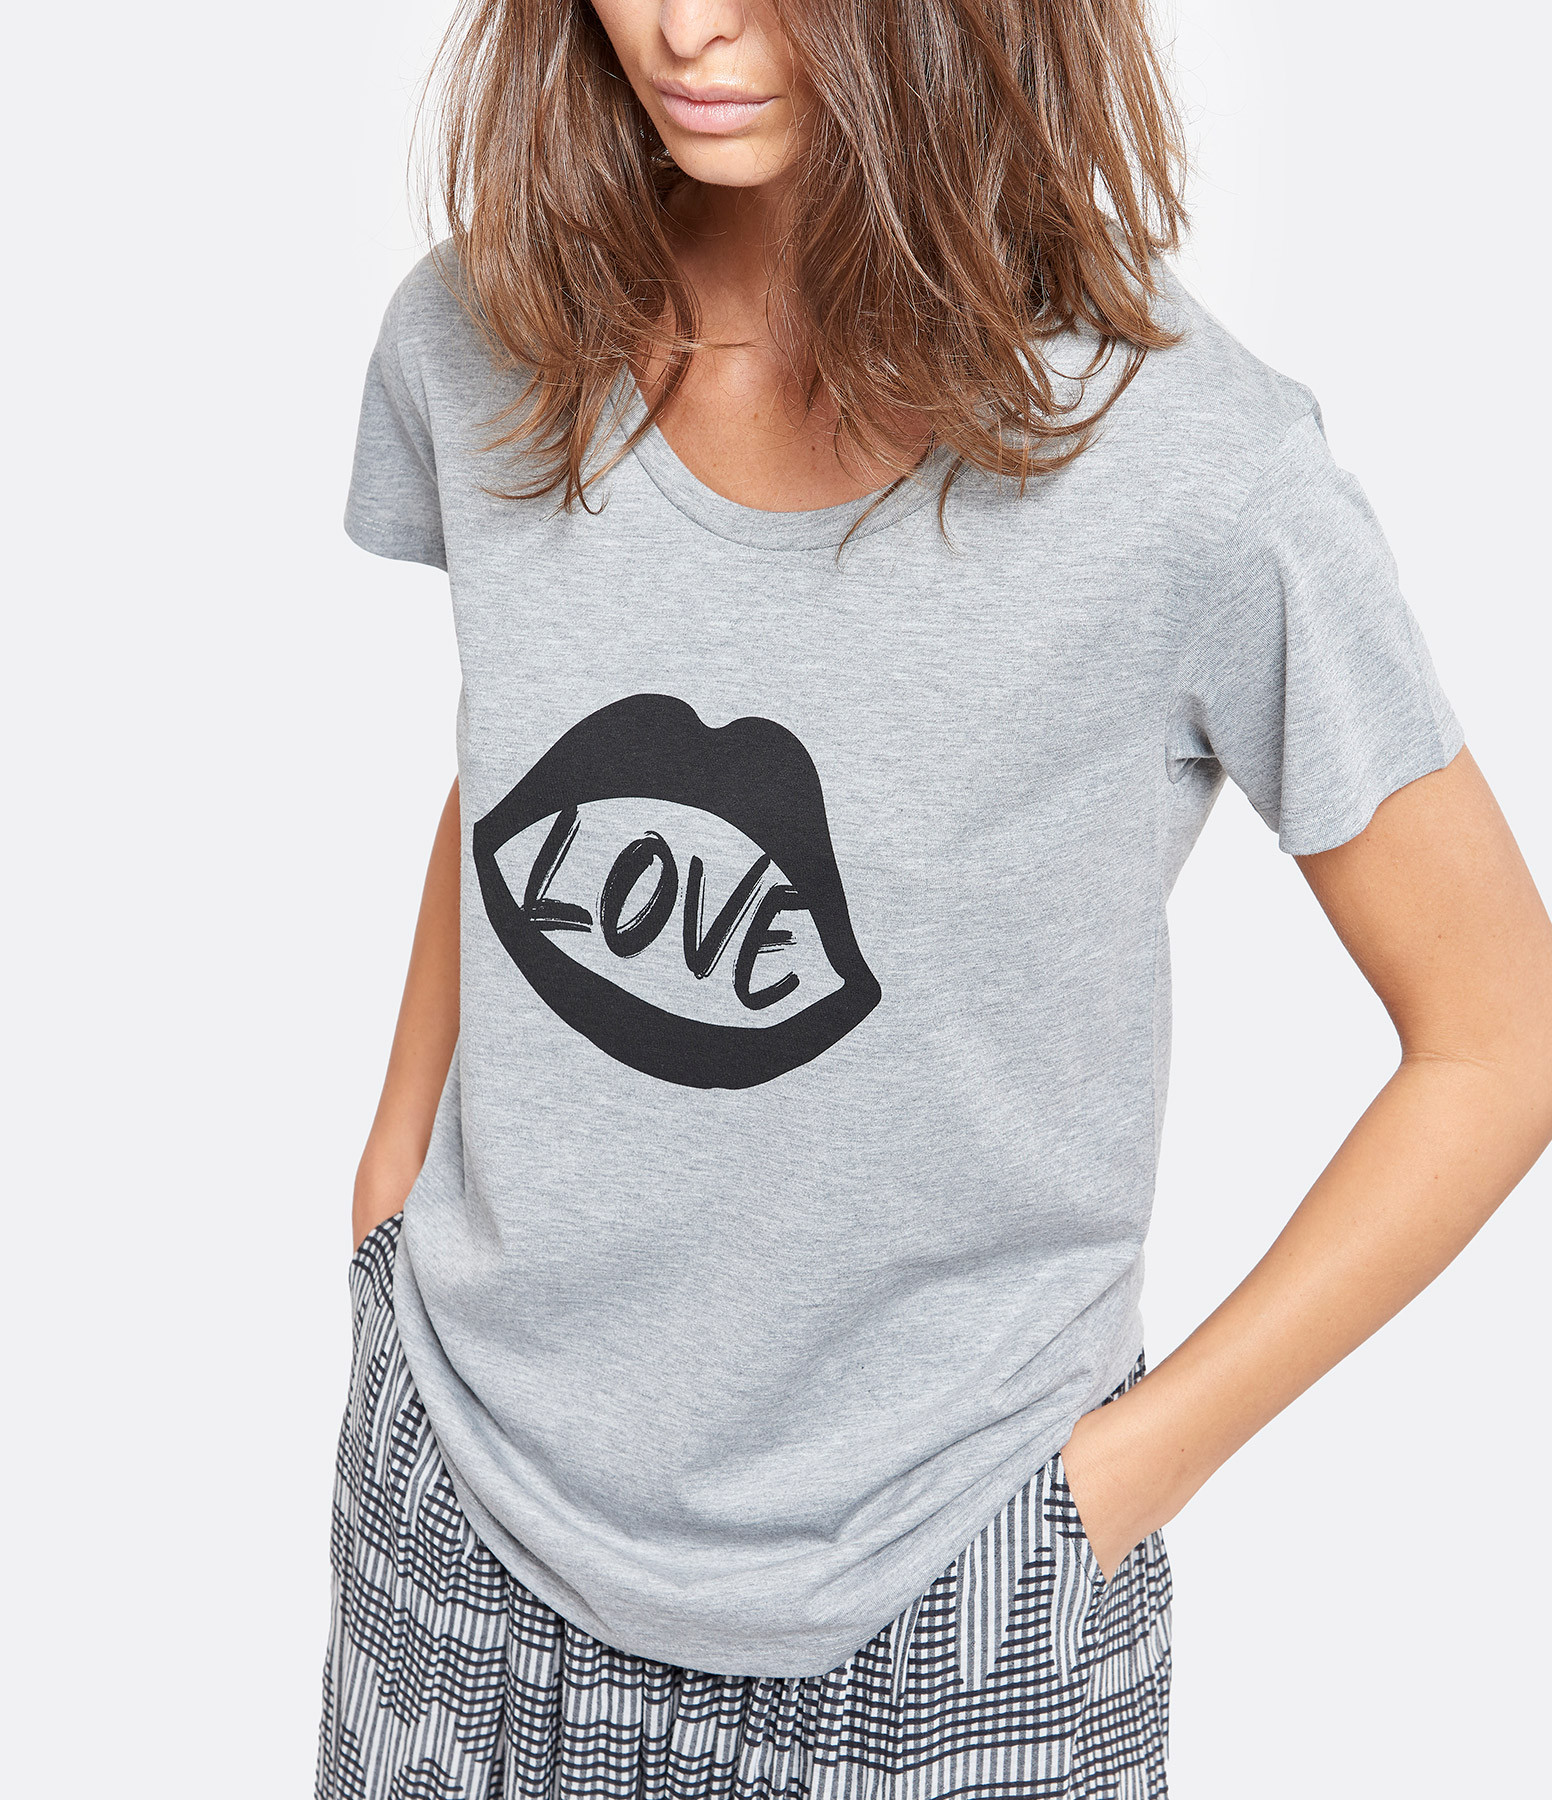 JEANNE VOULAND - Tee-shirt Evon Mouth Coton Gris